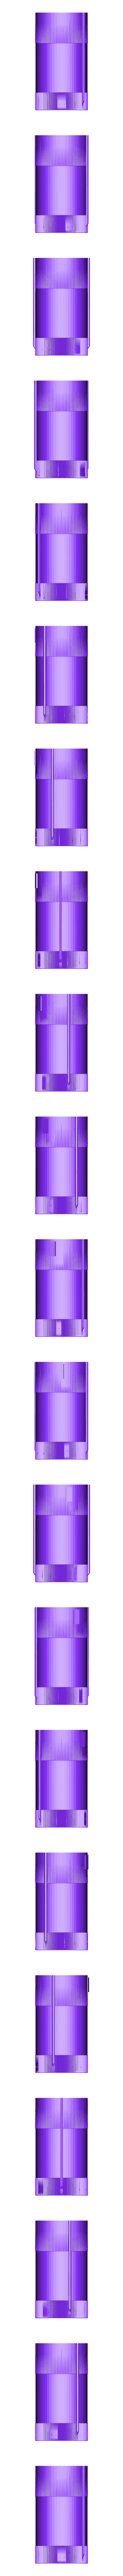 S-IC top.stl Download free STL file Saturn V Rocket • 3D printable model, spac3D